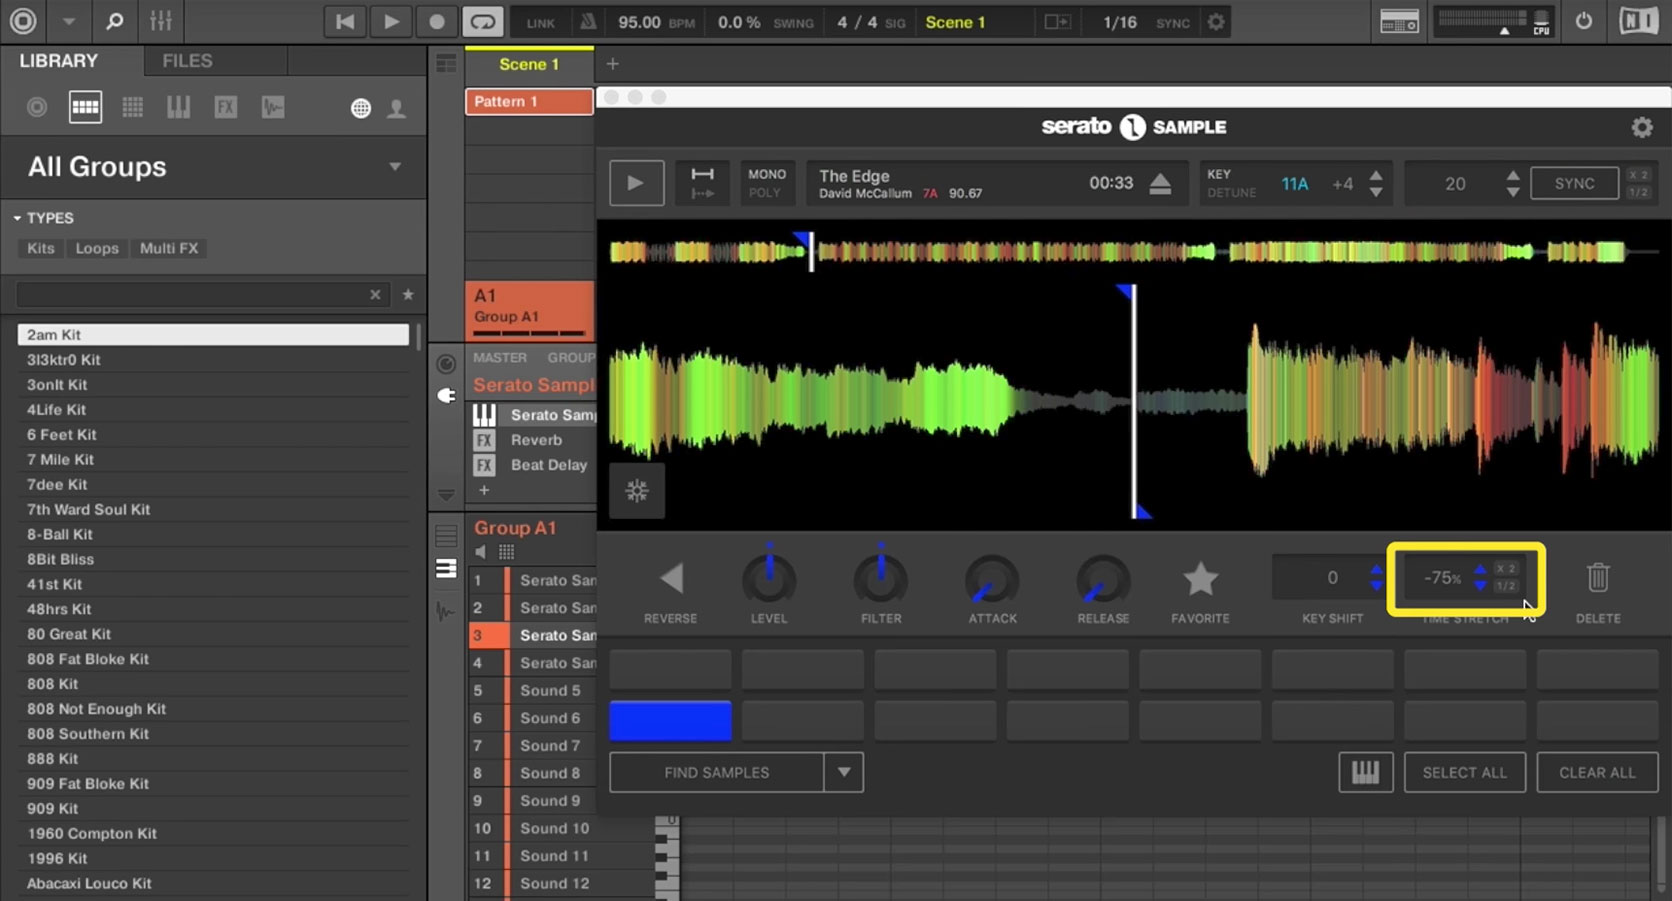 4. The power of Pitch 'n Time in Serato Sample